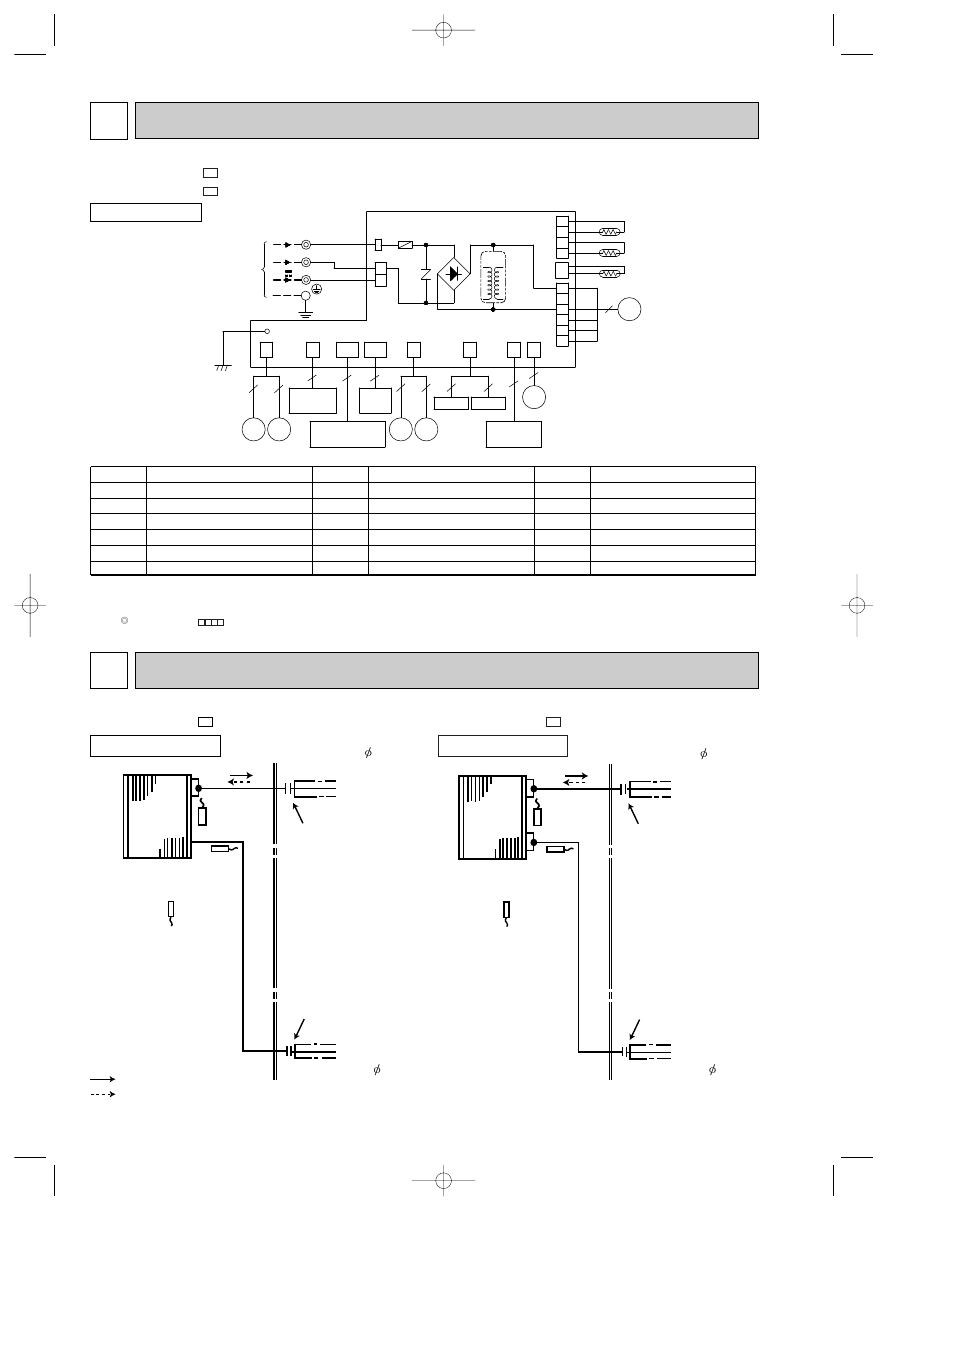 mitsubishi electric msz fa35va page8 6wiring diagram refrigerant system diagram 7, msz fa25va, indoor thermistor wiring diagram at readyjetset.co